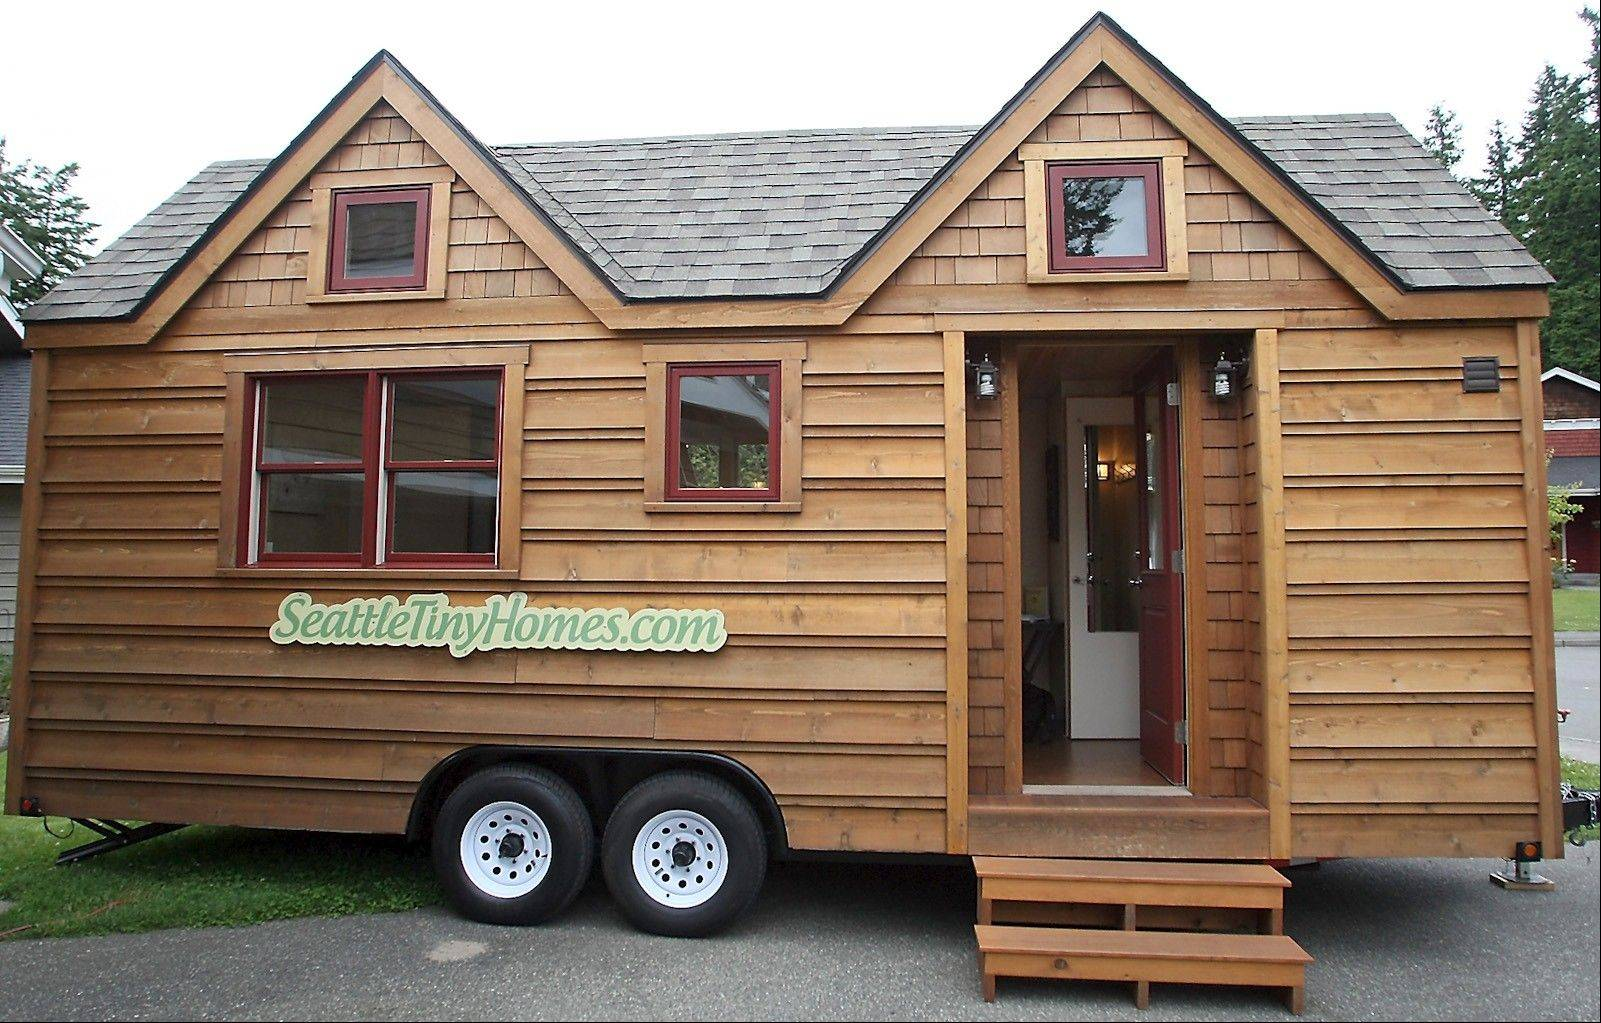 This 174-square-foot Ballard model home can be used as a guesthouse.